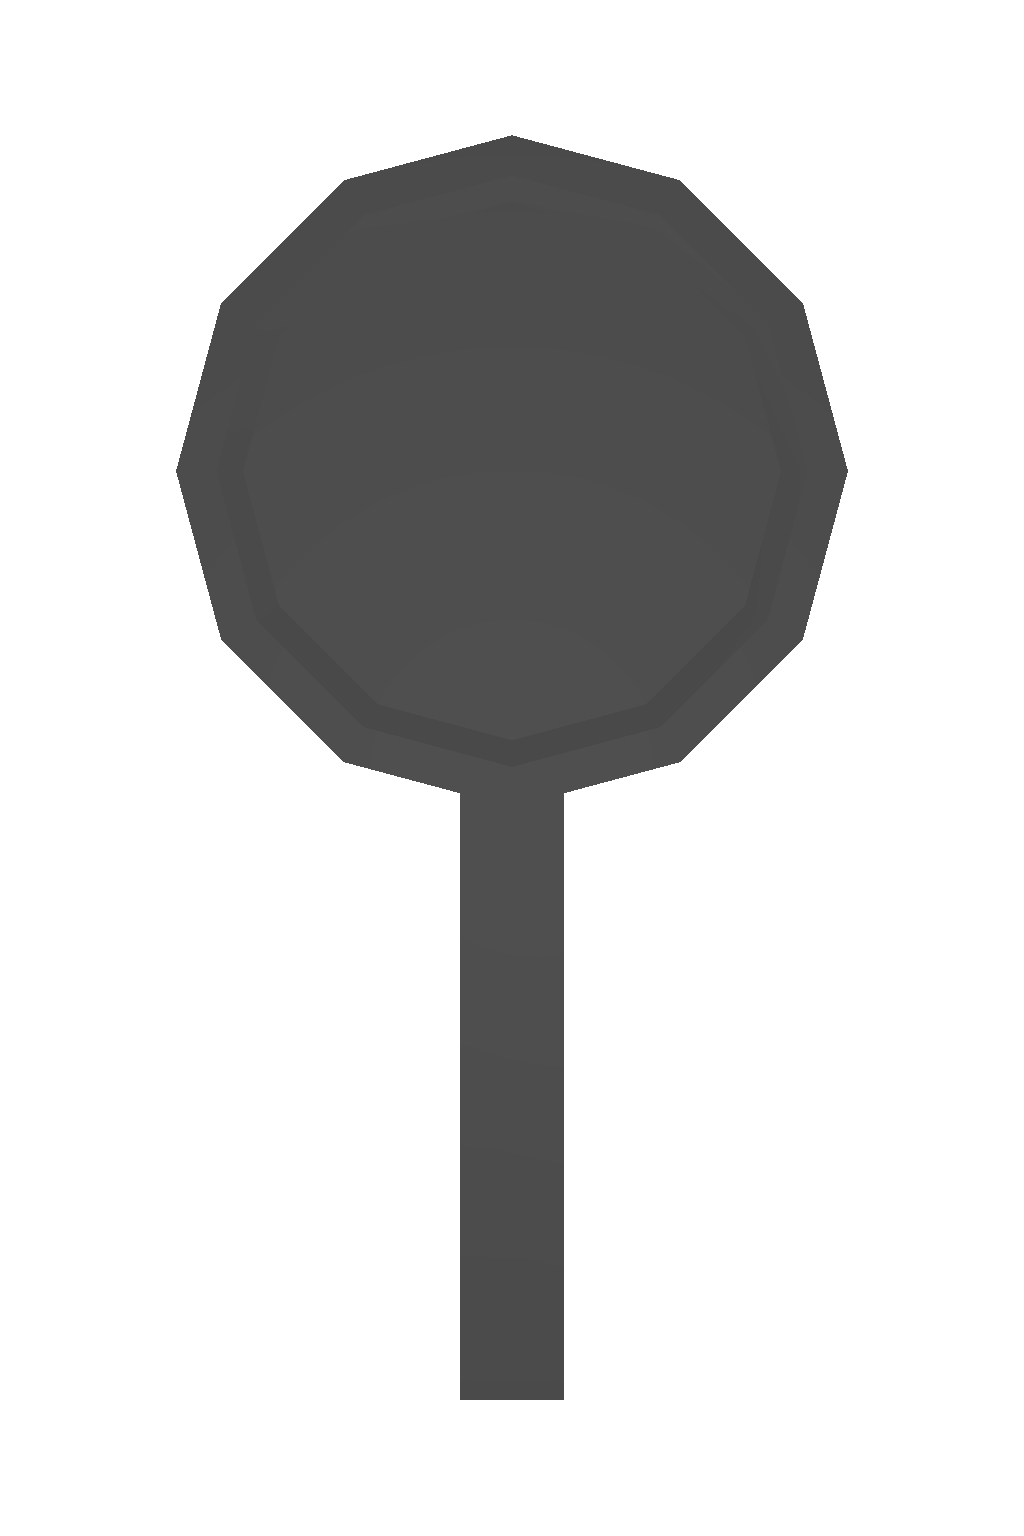 Picture of Unturned Item: Frying Pan